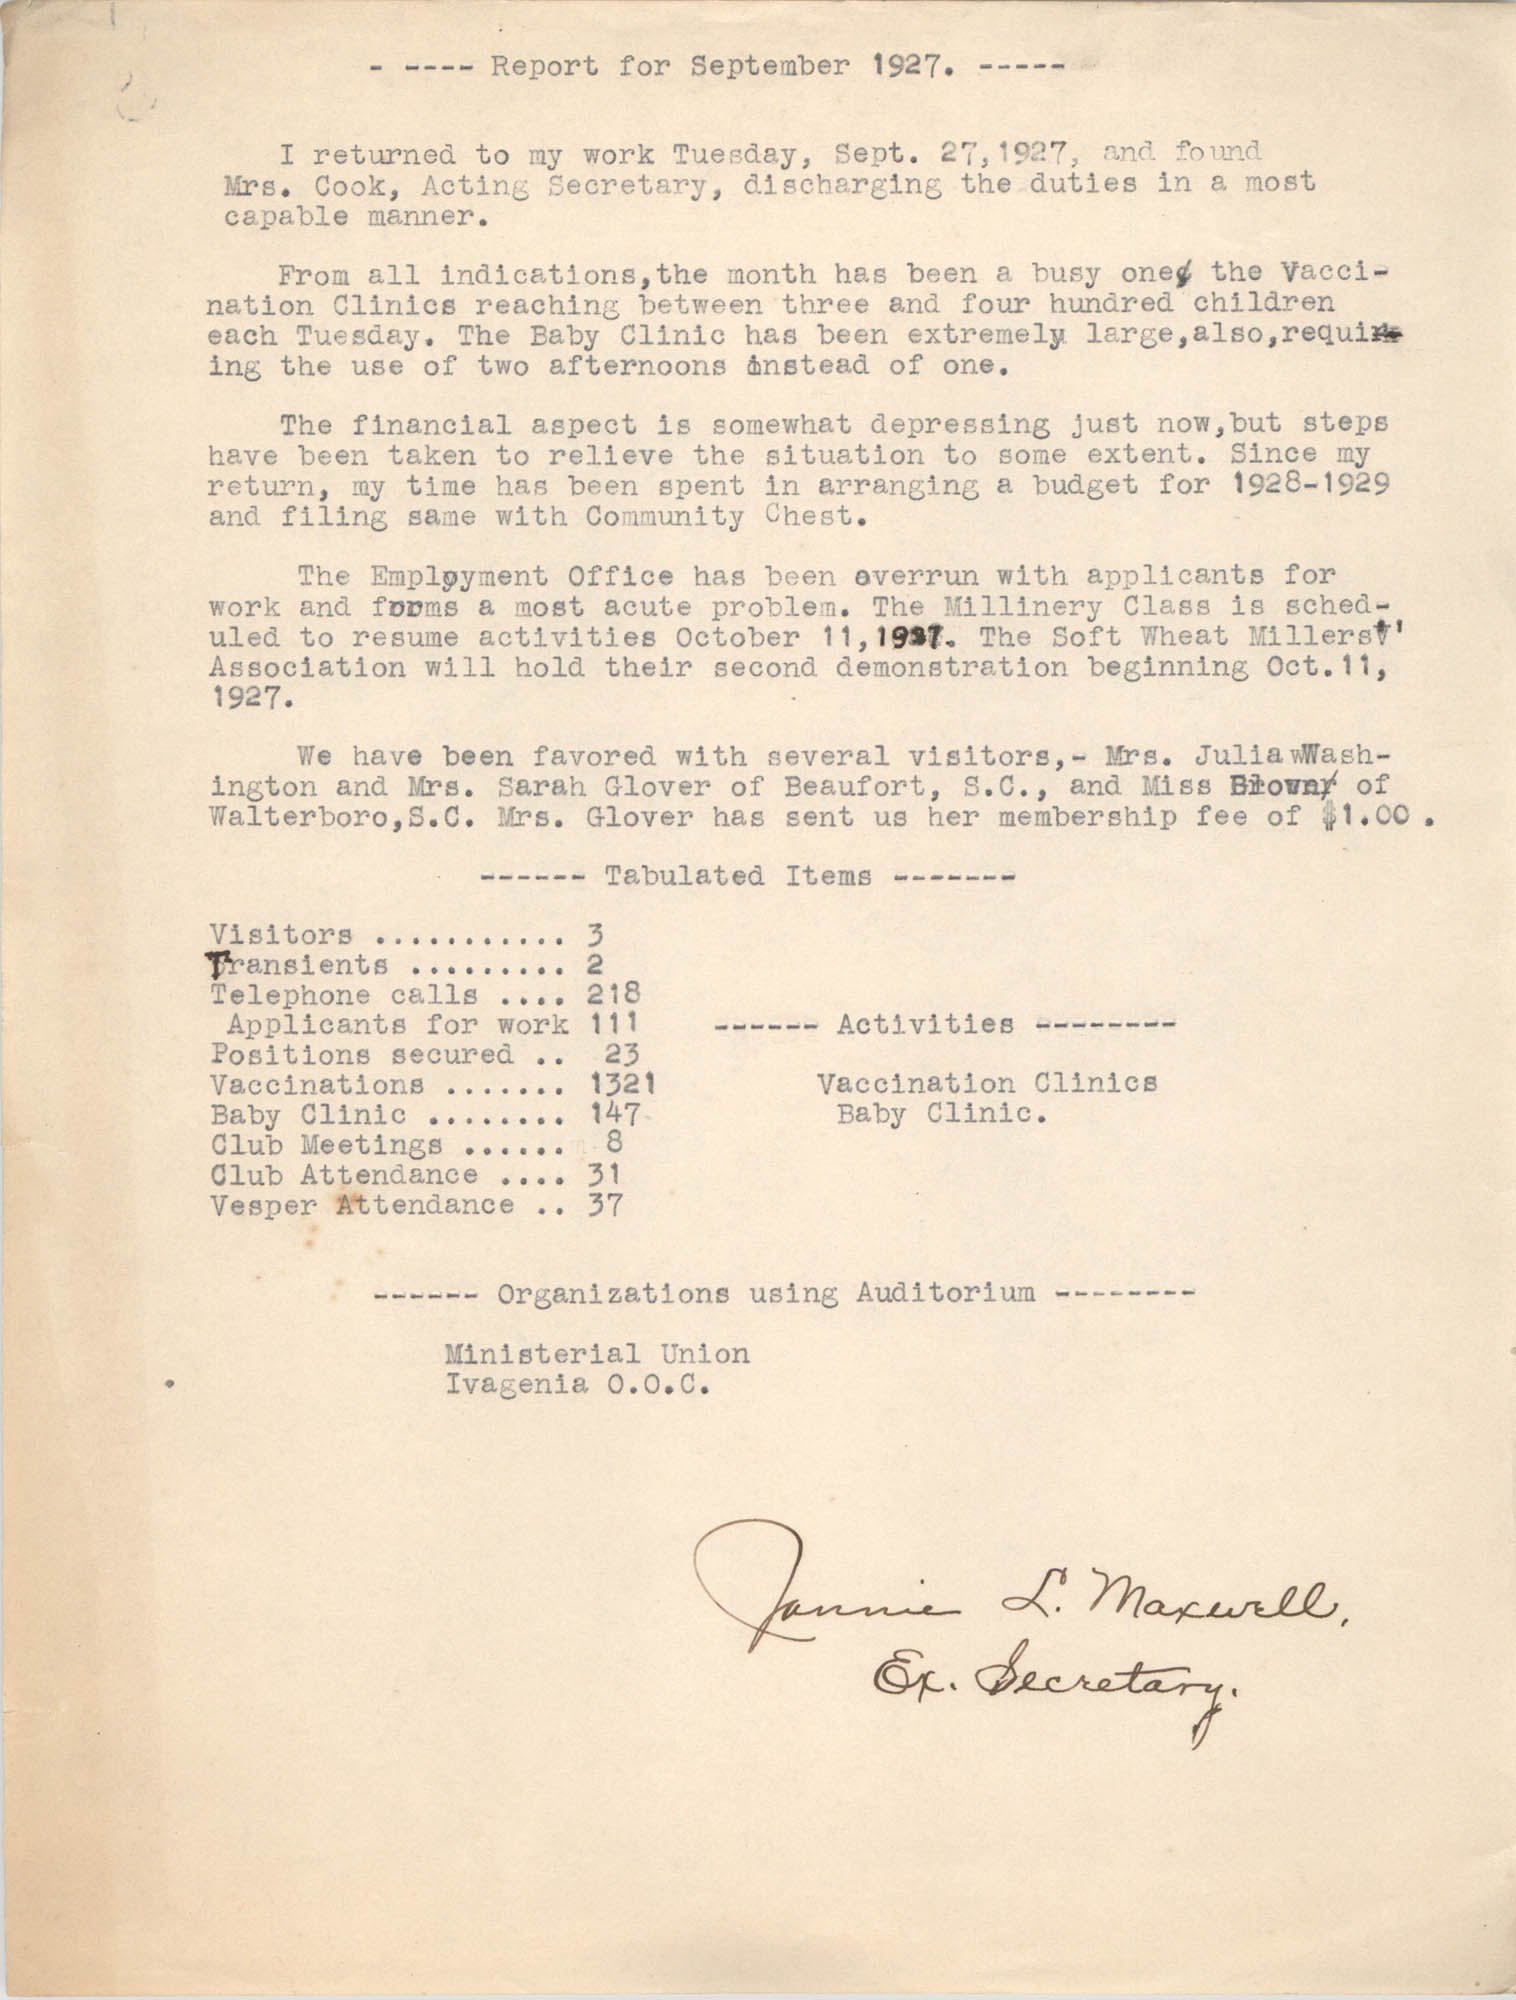 Monthly Report for the Coming Street Y.W.C.A., September 1927